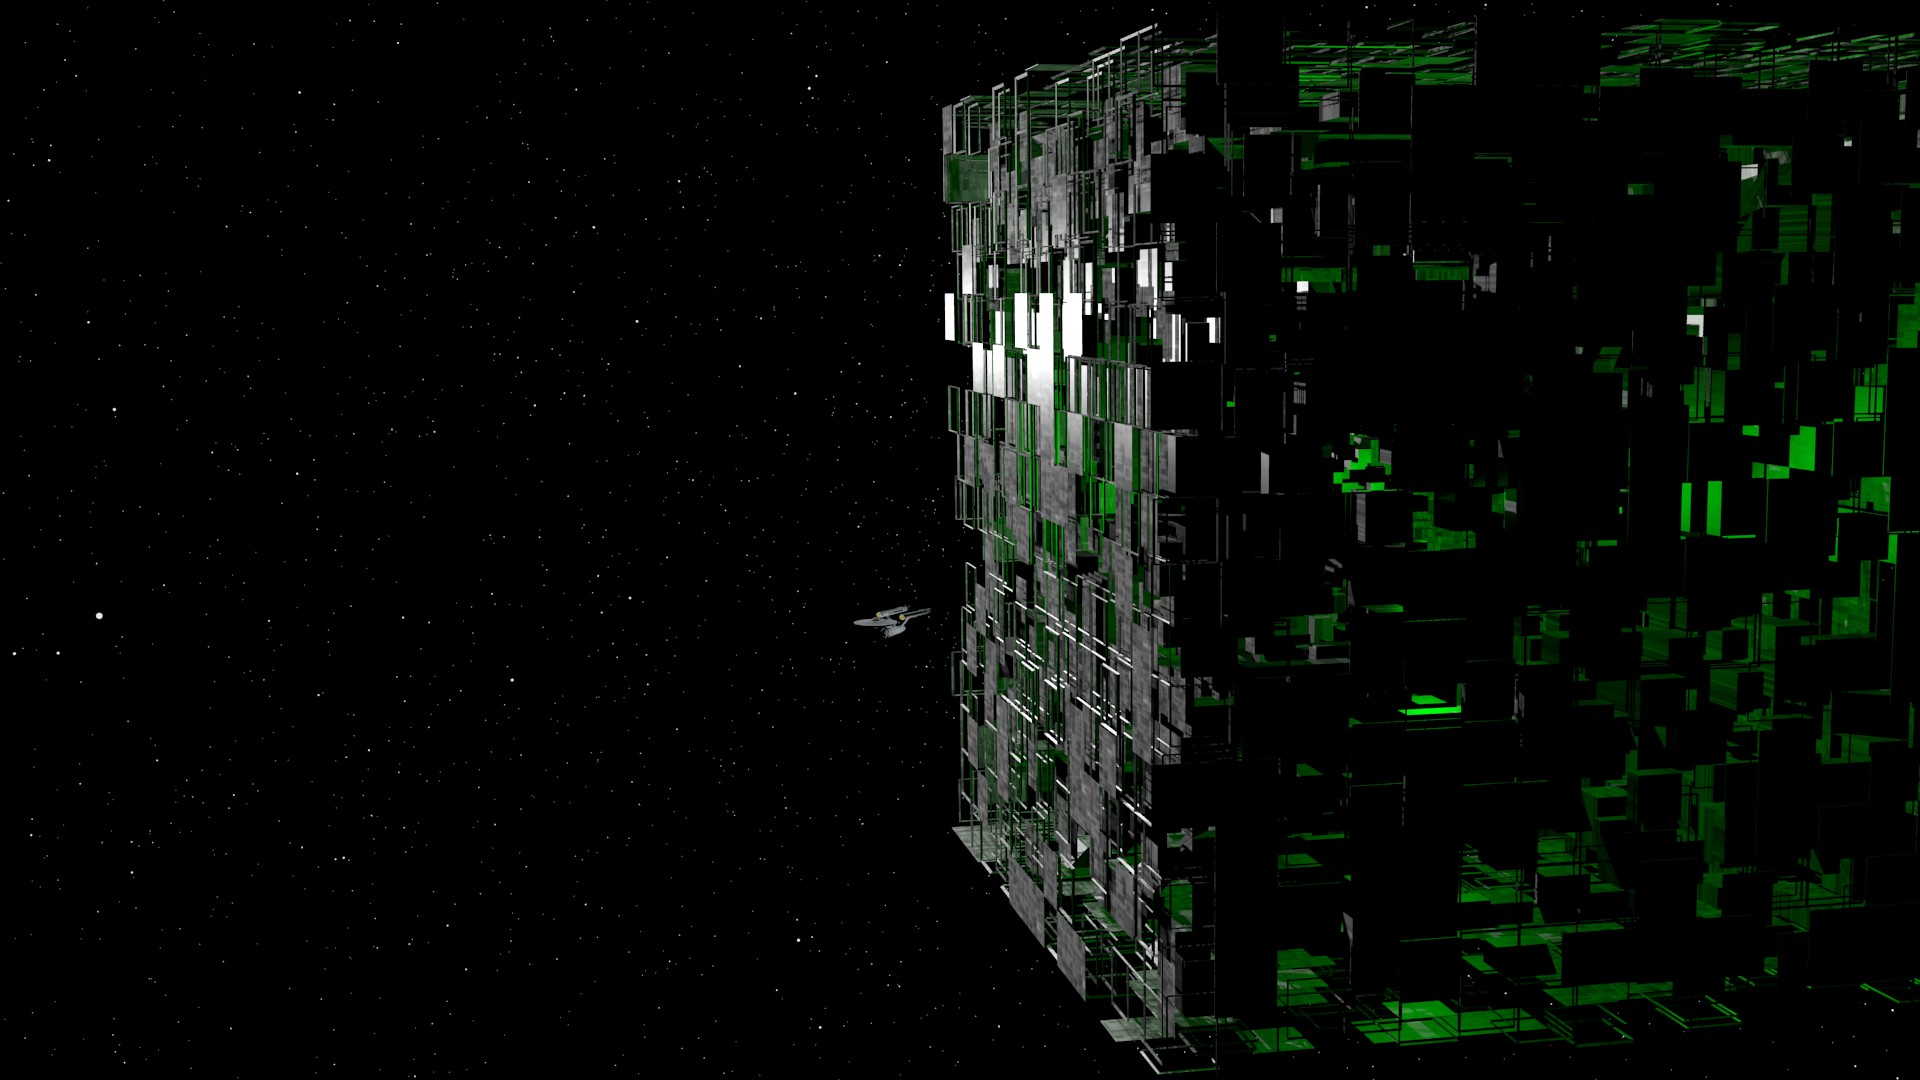 TOS Enterprise Vs The Borg